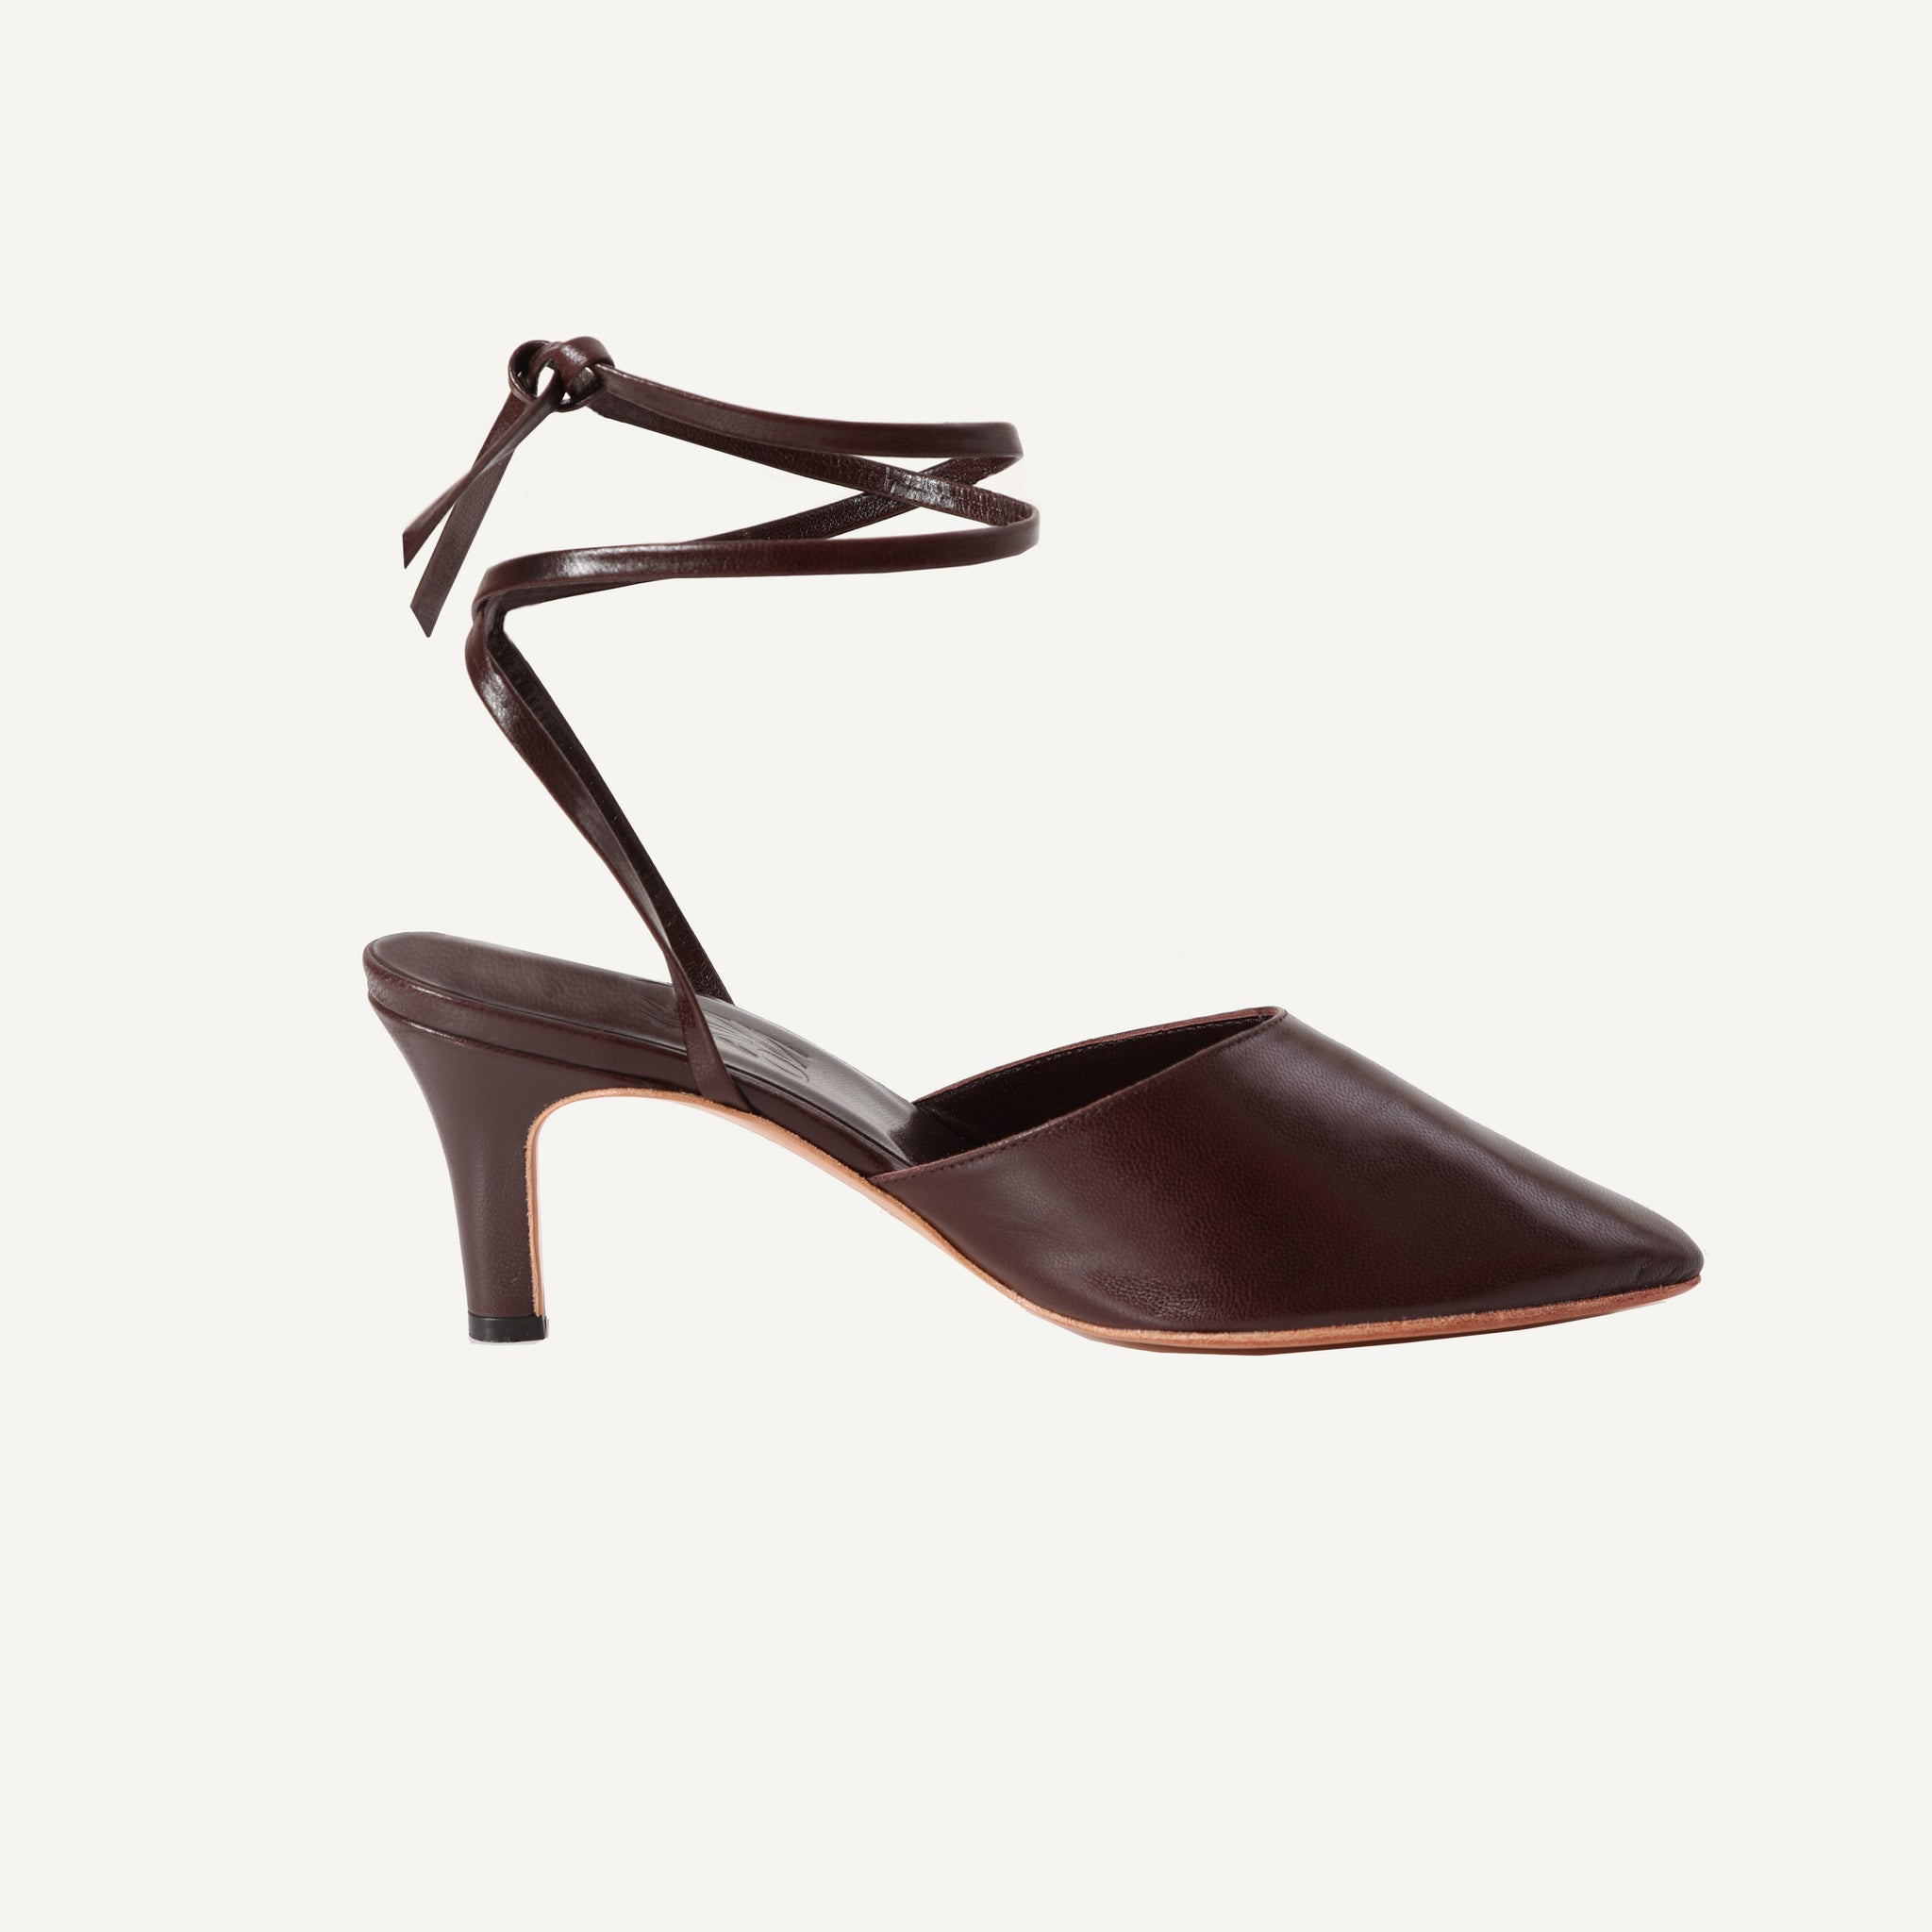 MARTINIANO PARTY SANDAL